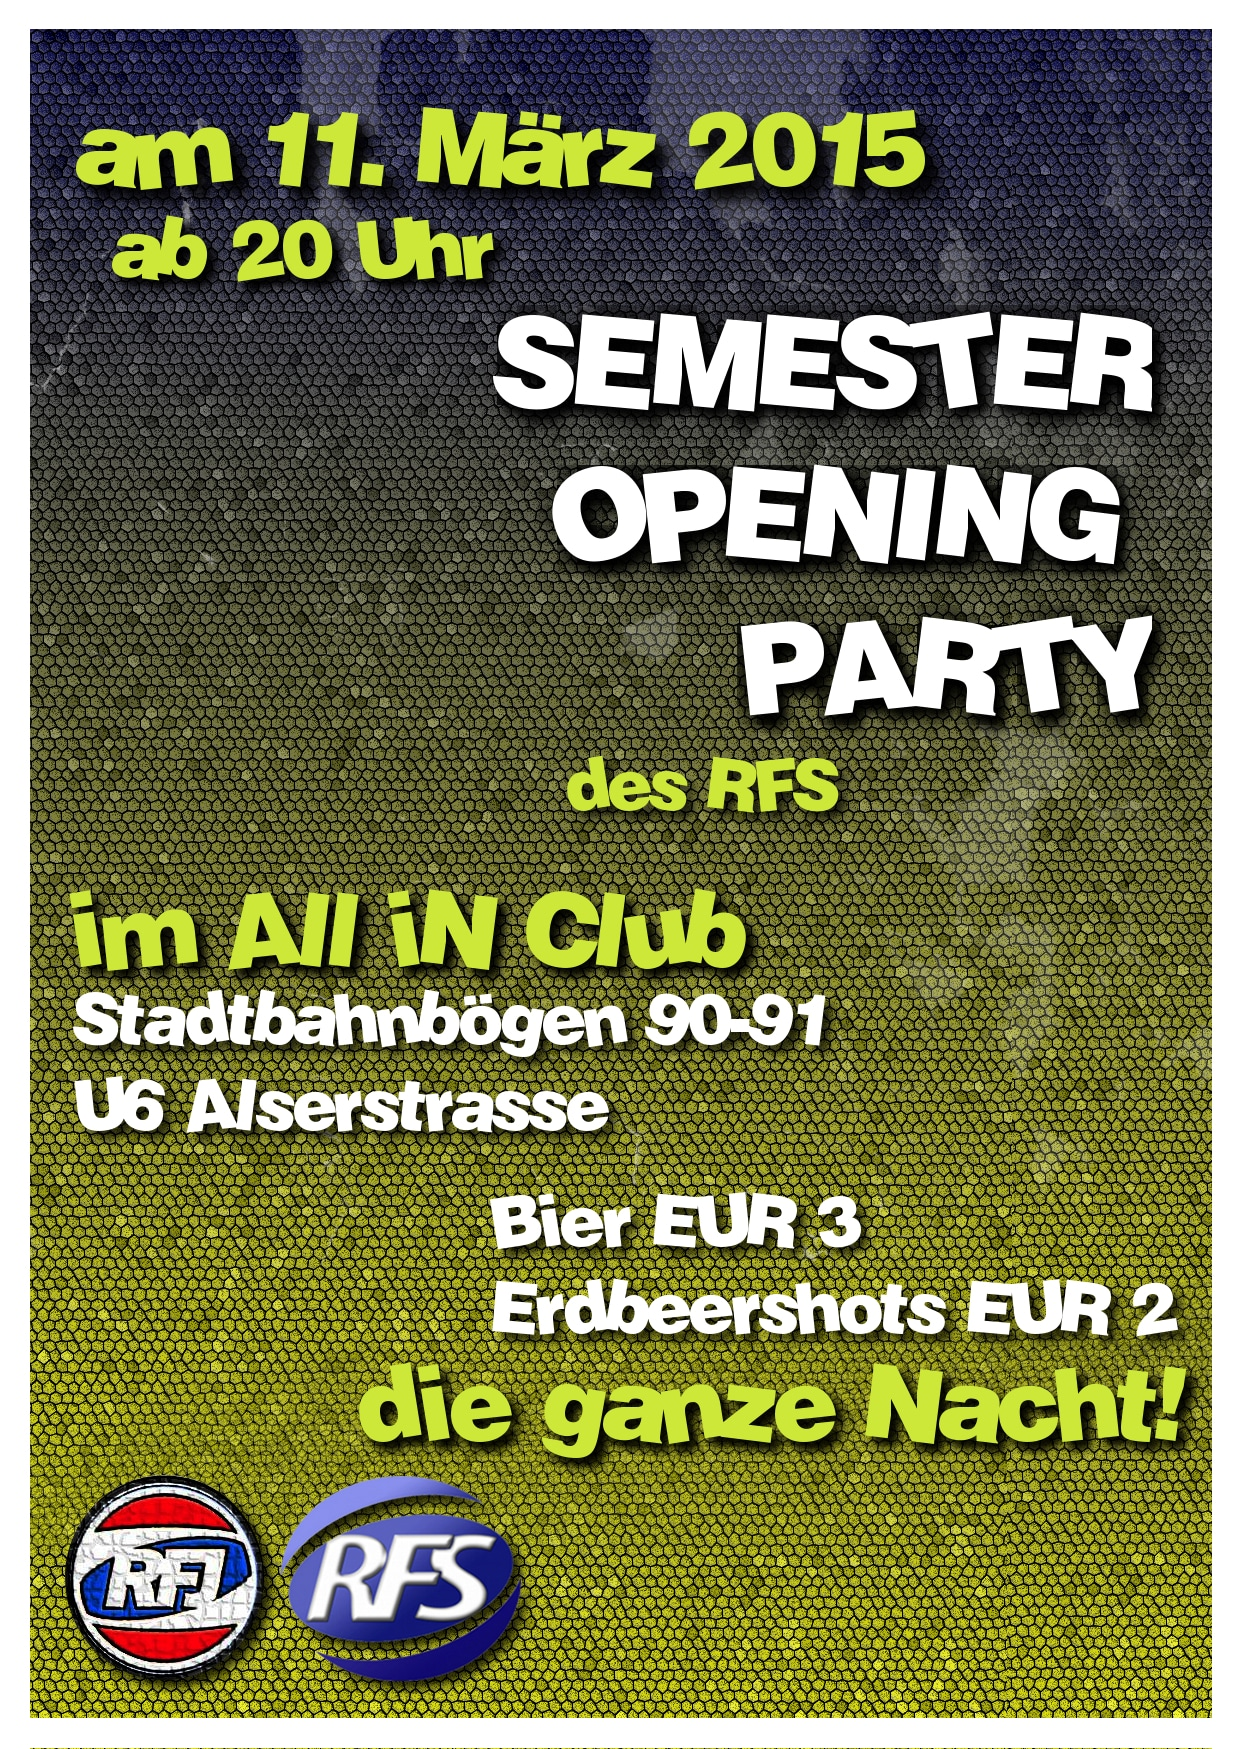 semesteropening_flyer_v2